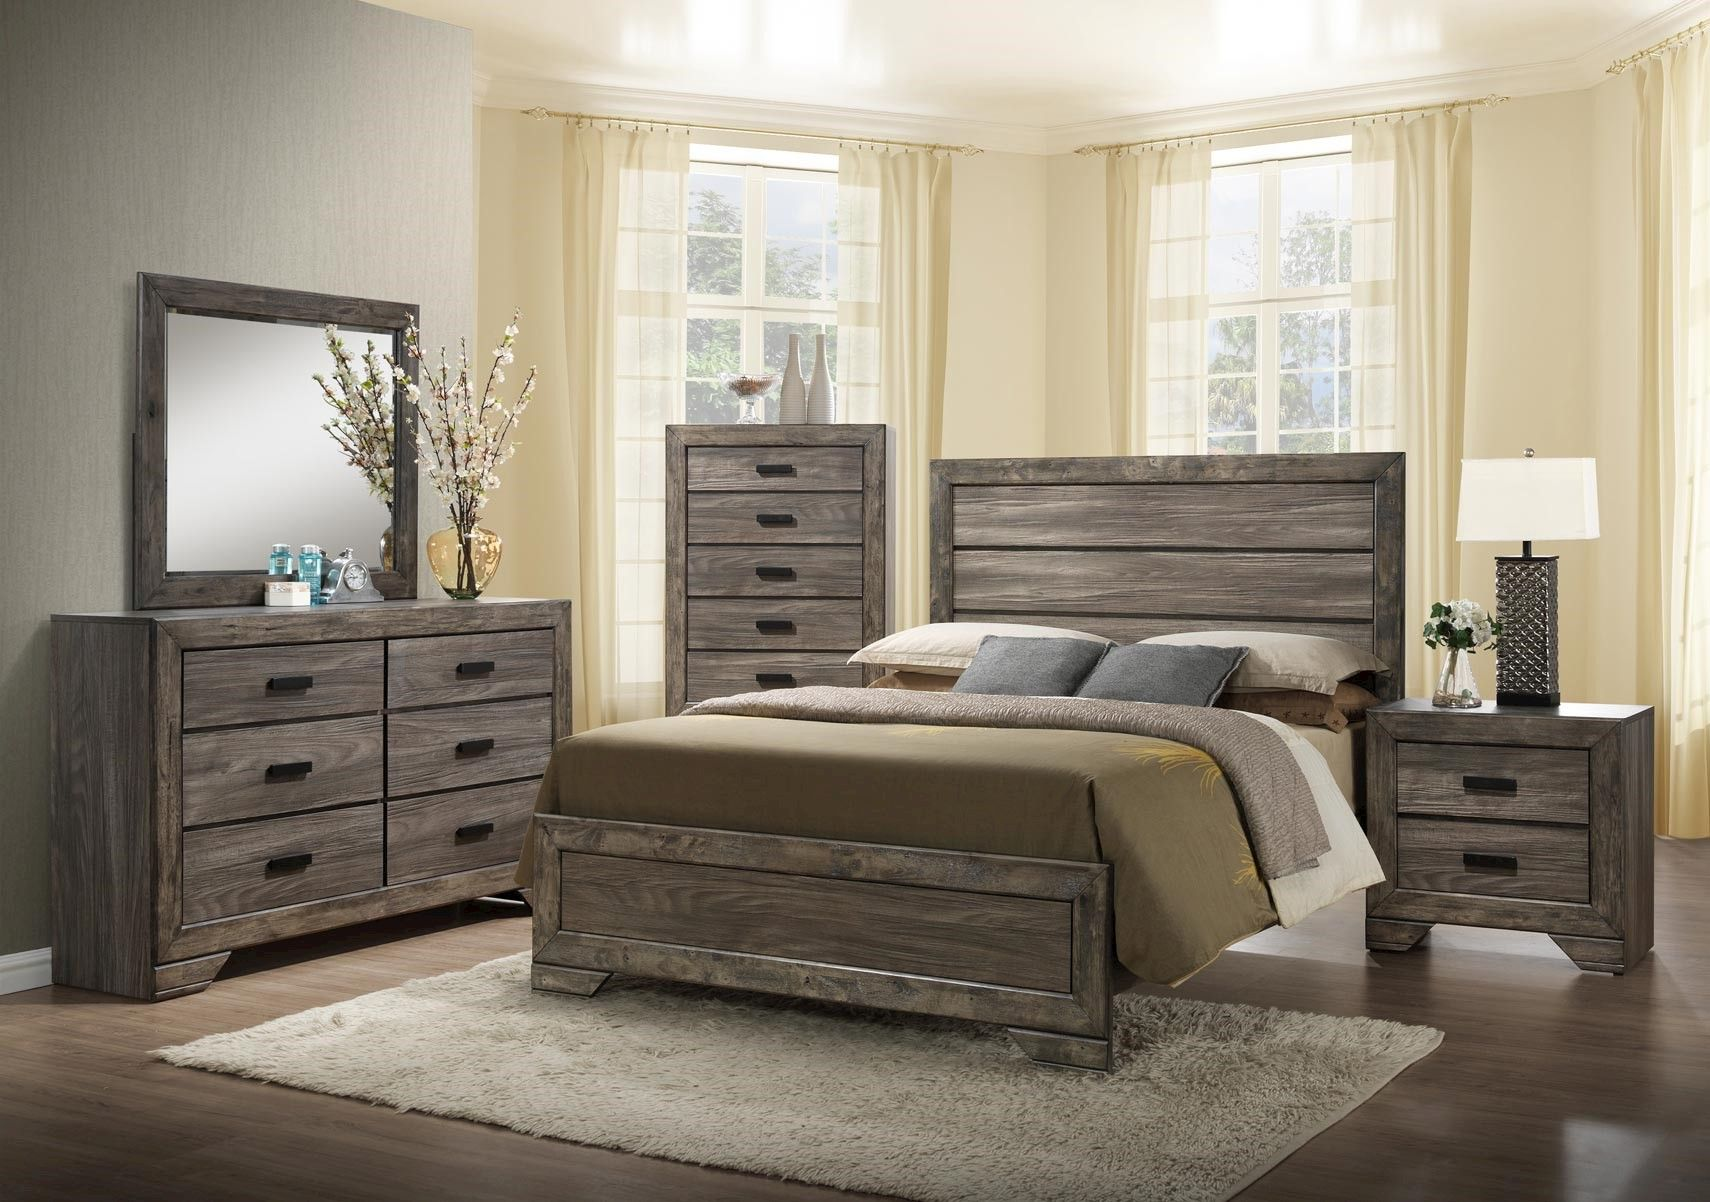 Lacks | Nathan 4-Pc Queen Bedroom Set | Bedrooms | Wood bedroom sets ...